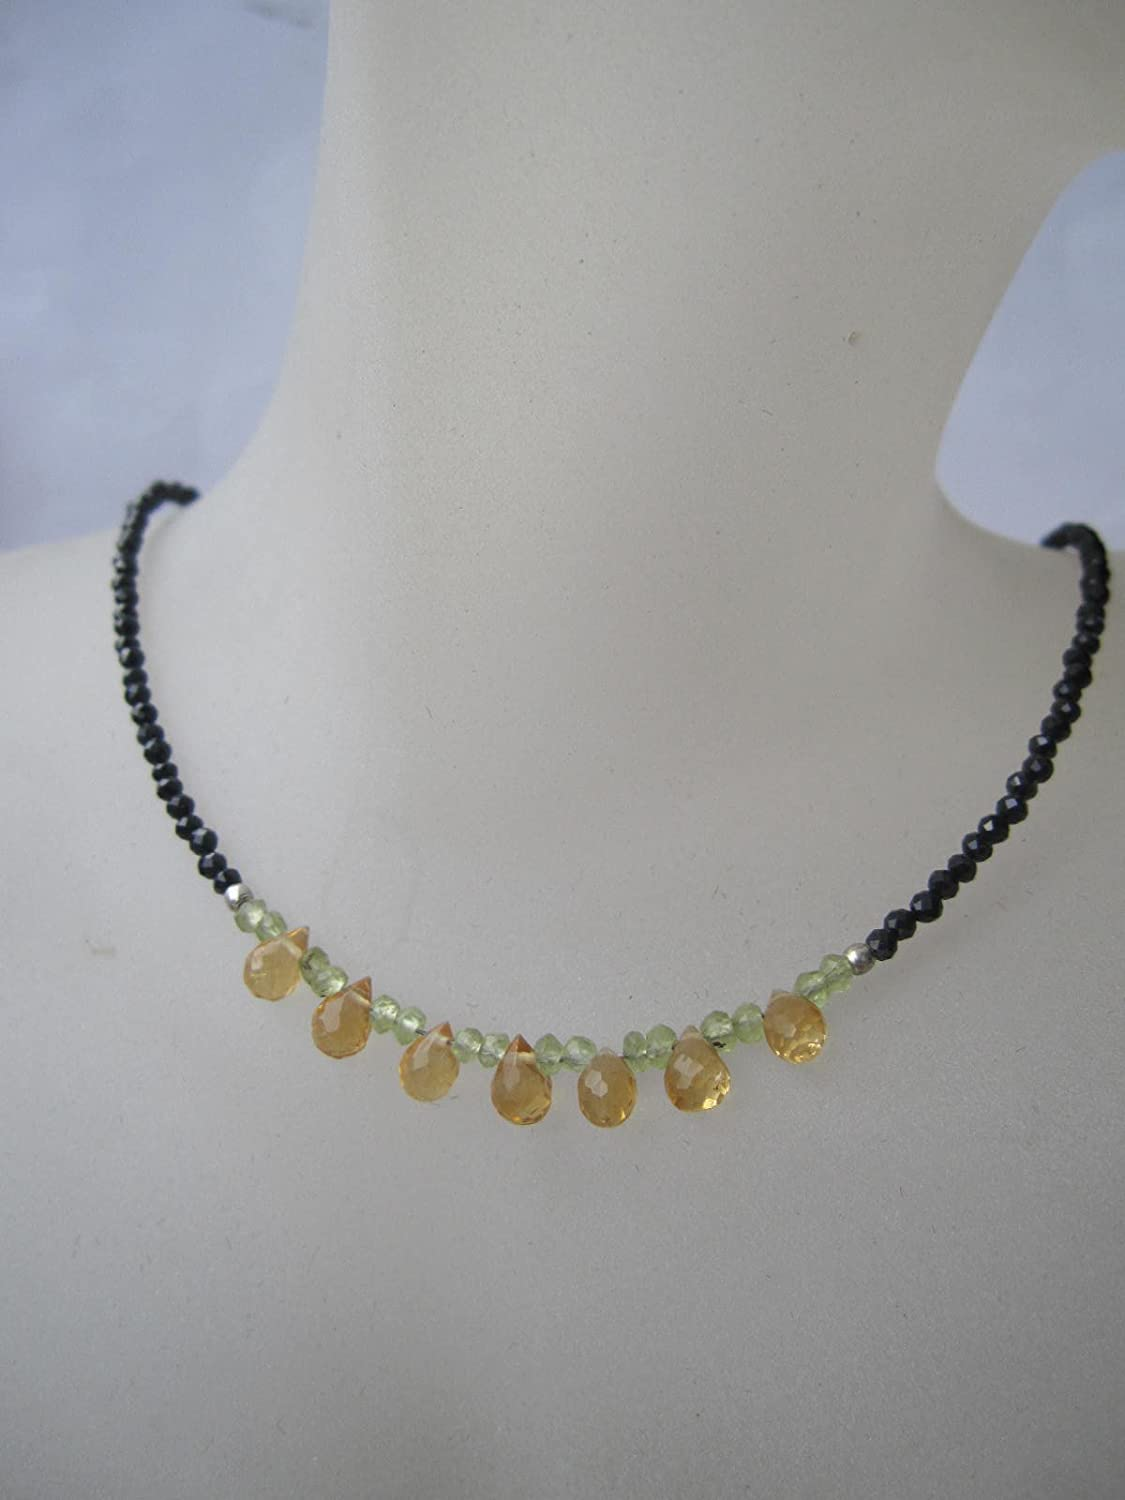 Custom Size 15,16,17,18 20 Inches Citrine,Peridot,Black Spinel Necklace,925 Sterling Silver Chain Extender 1 inch